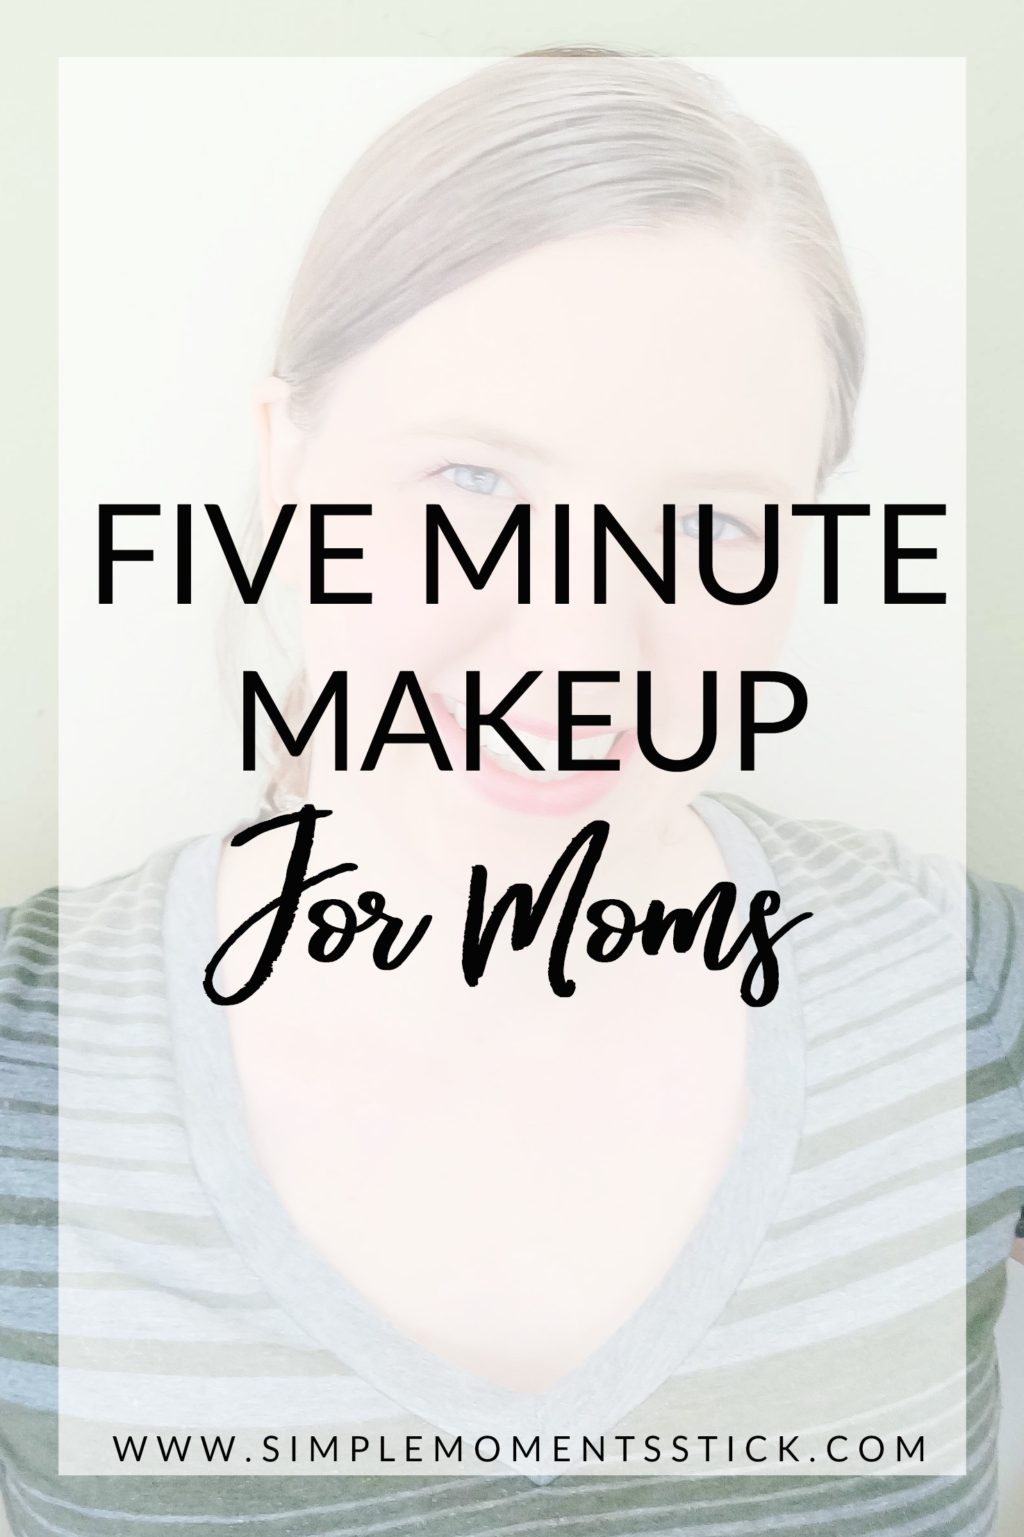 Check out this fantastic quick makeup for everyday. Every mom needs a five minute makeup routine to have them looking good fast! This is the makeup tutorial for you!